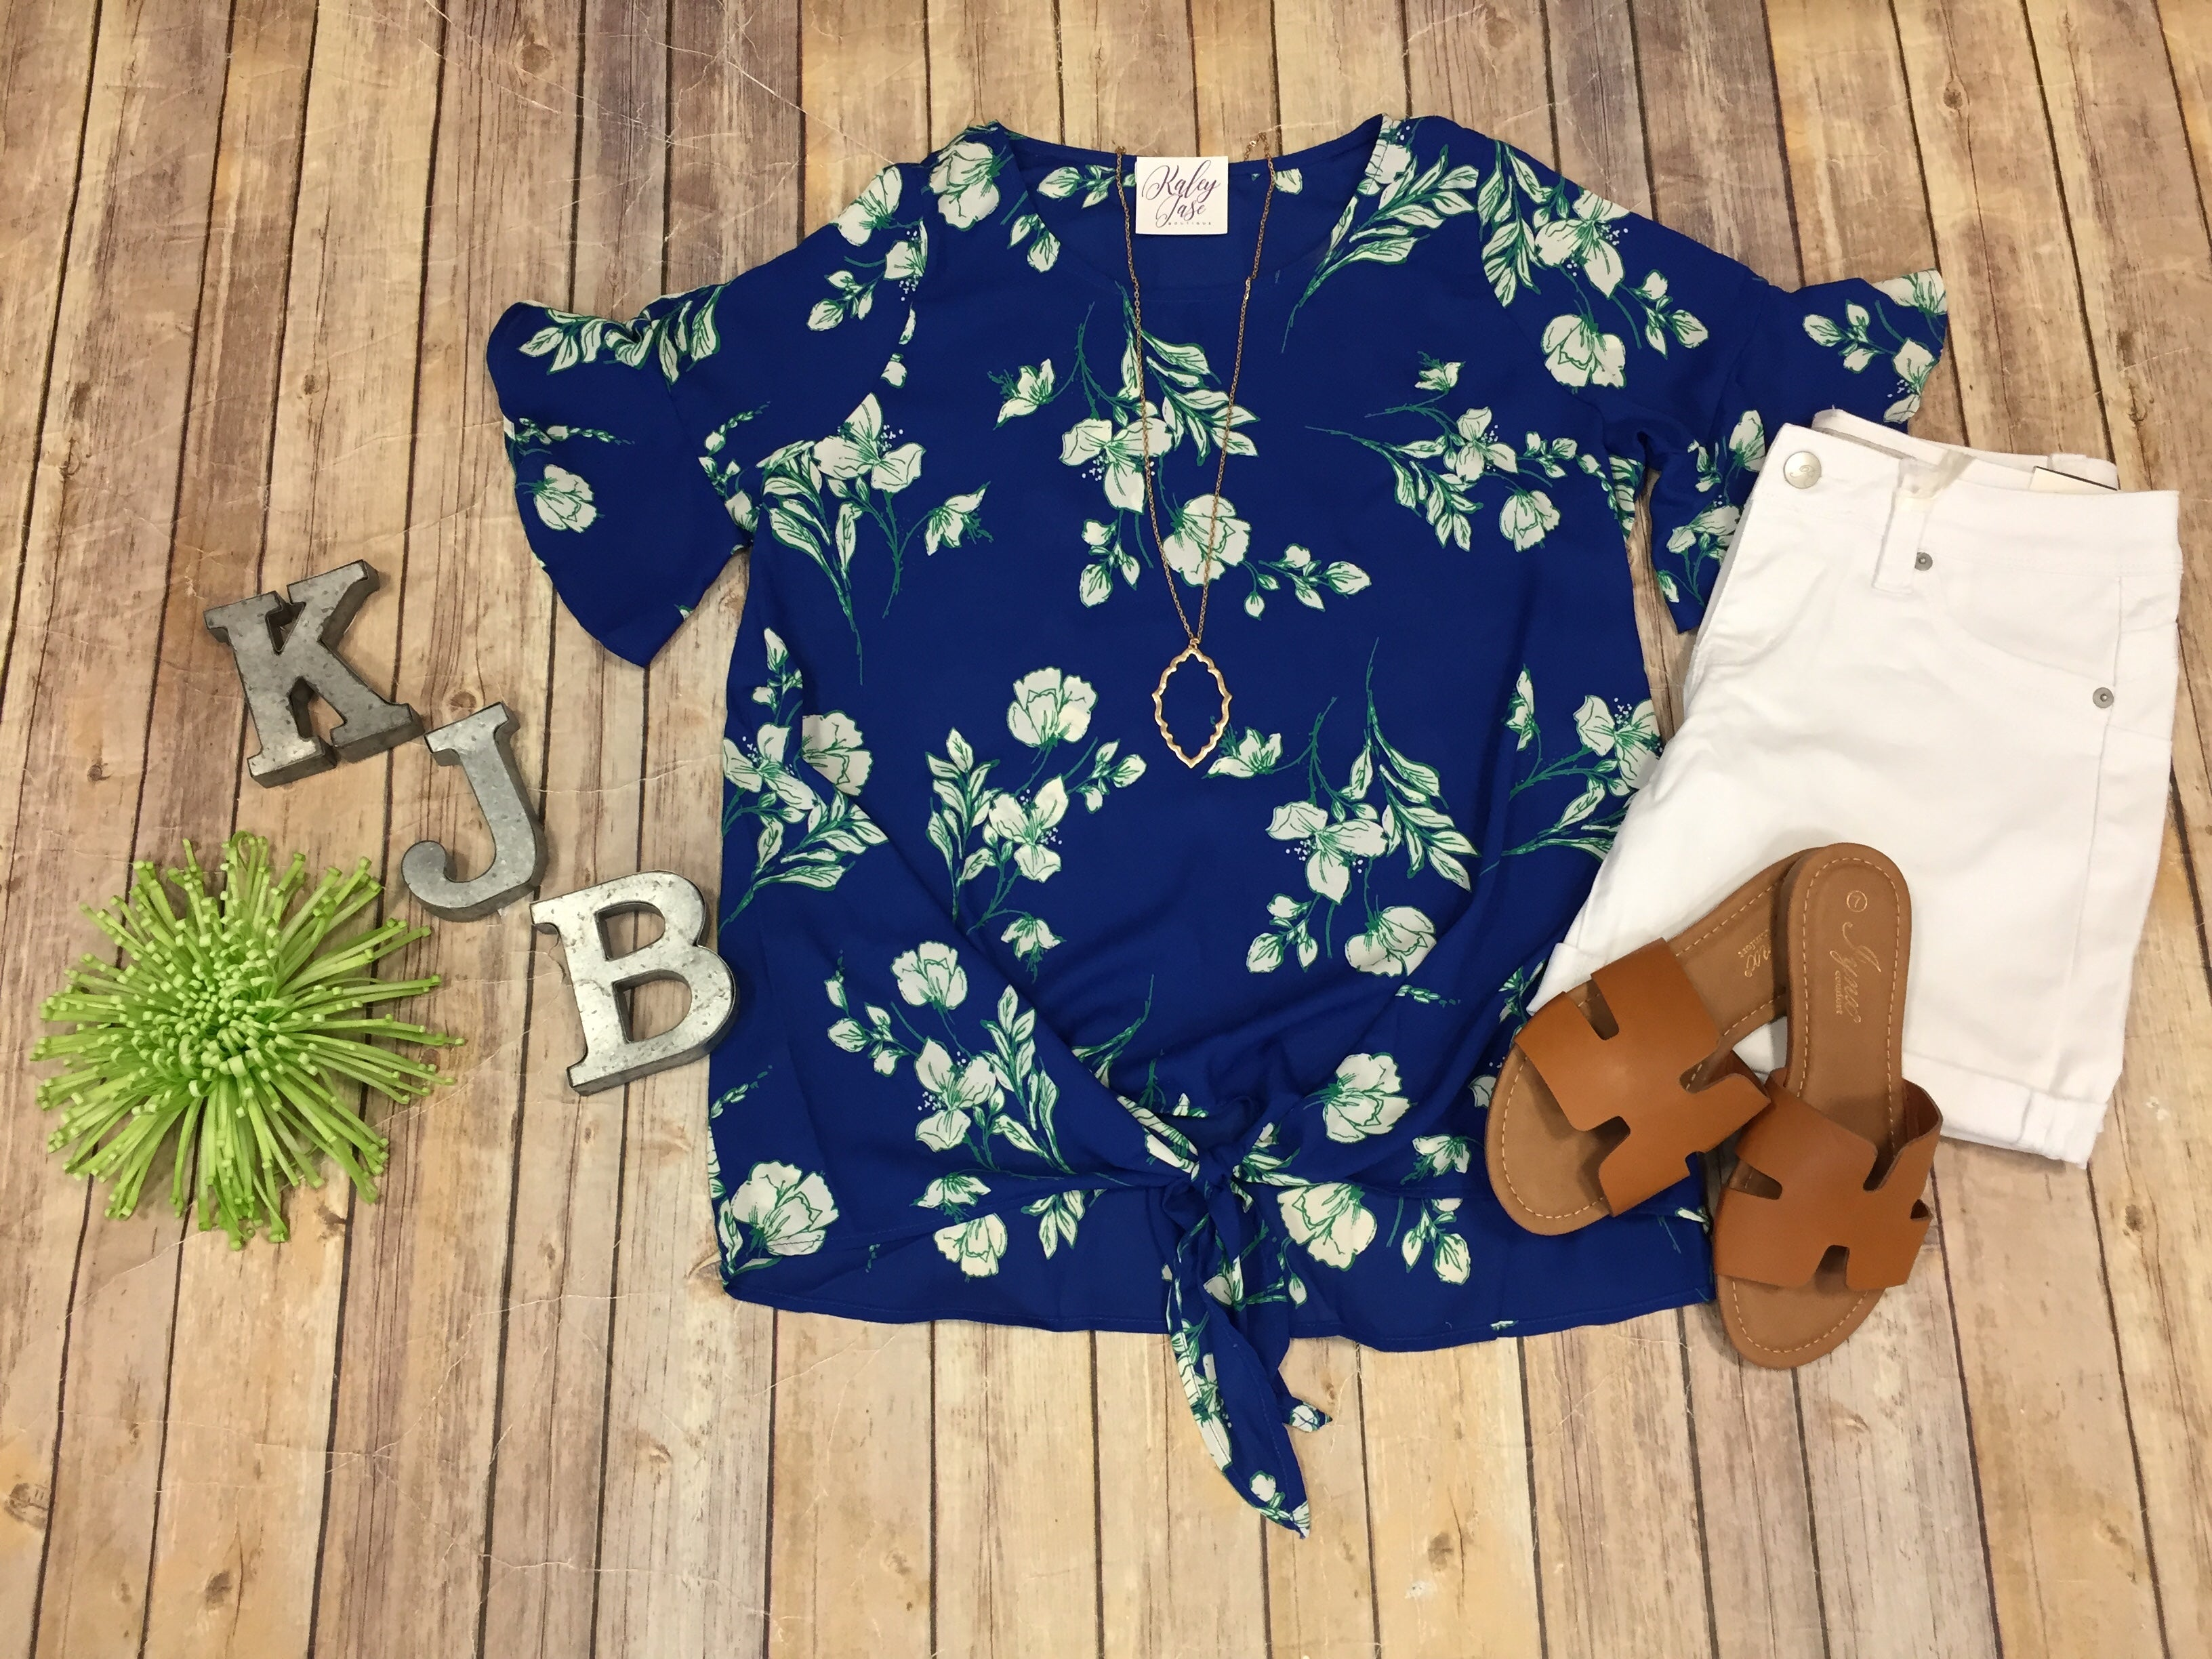 Deal of the Day Blue Floral Tie Top